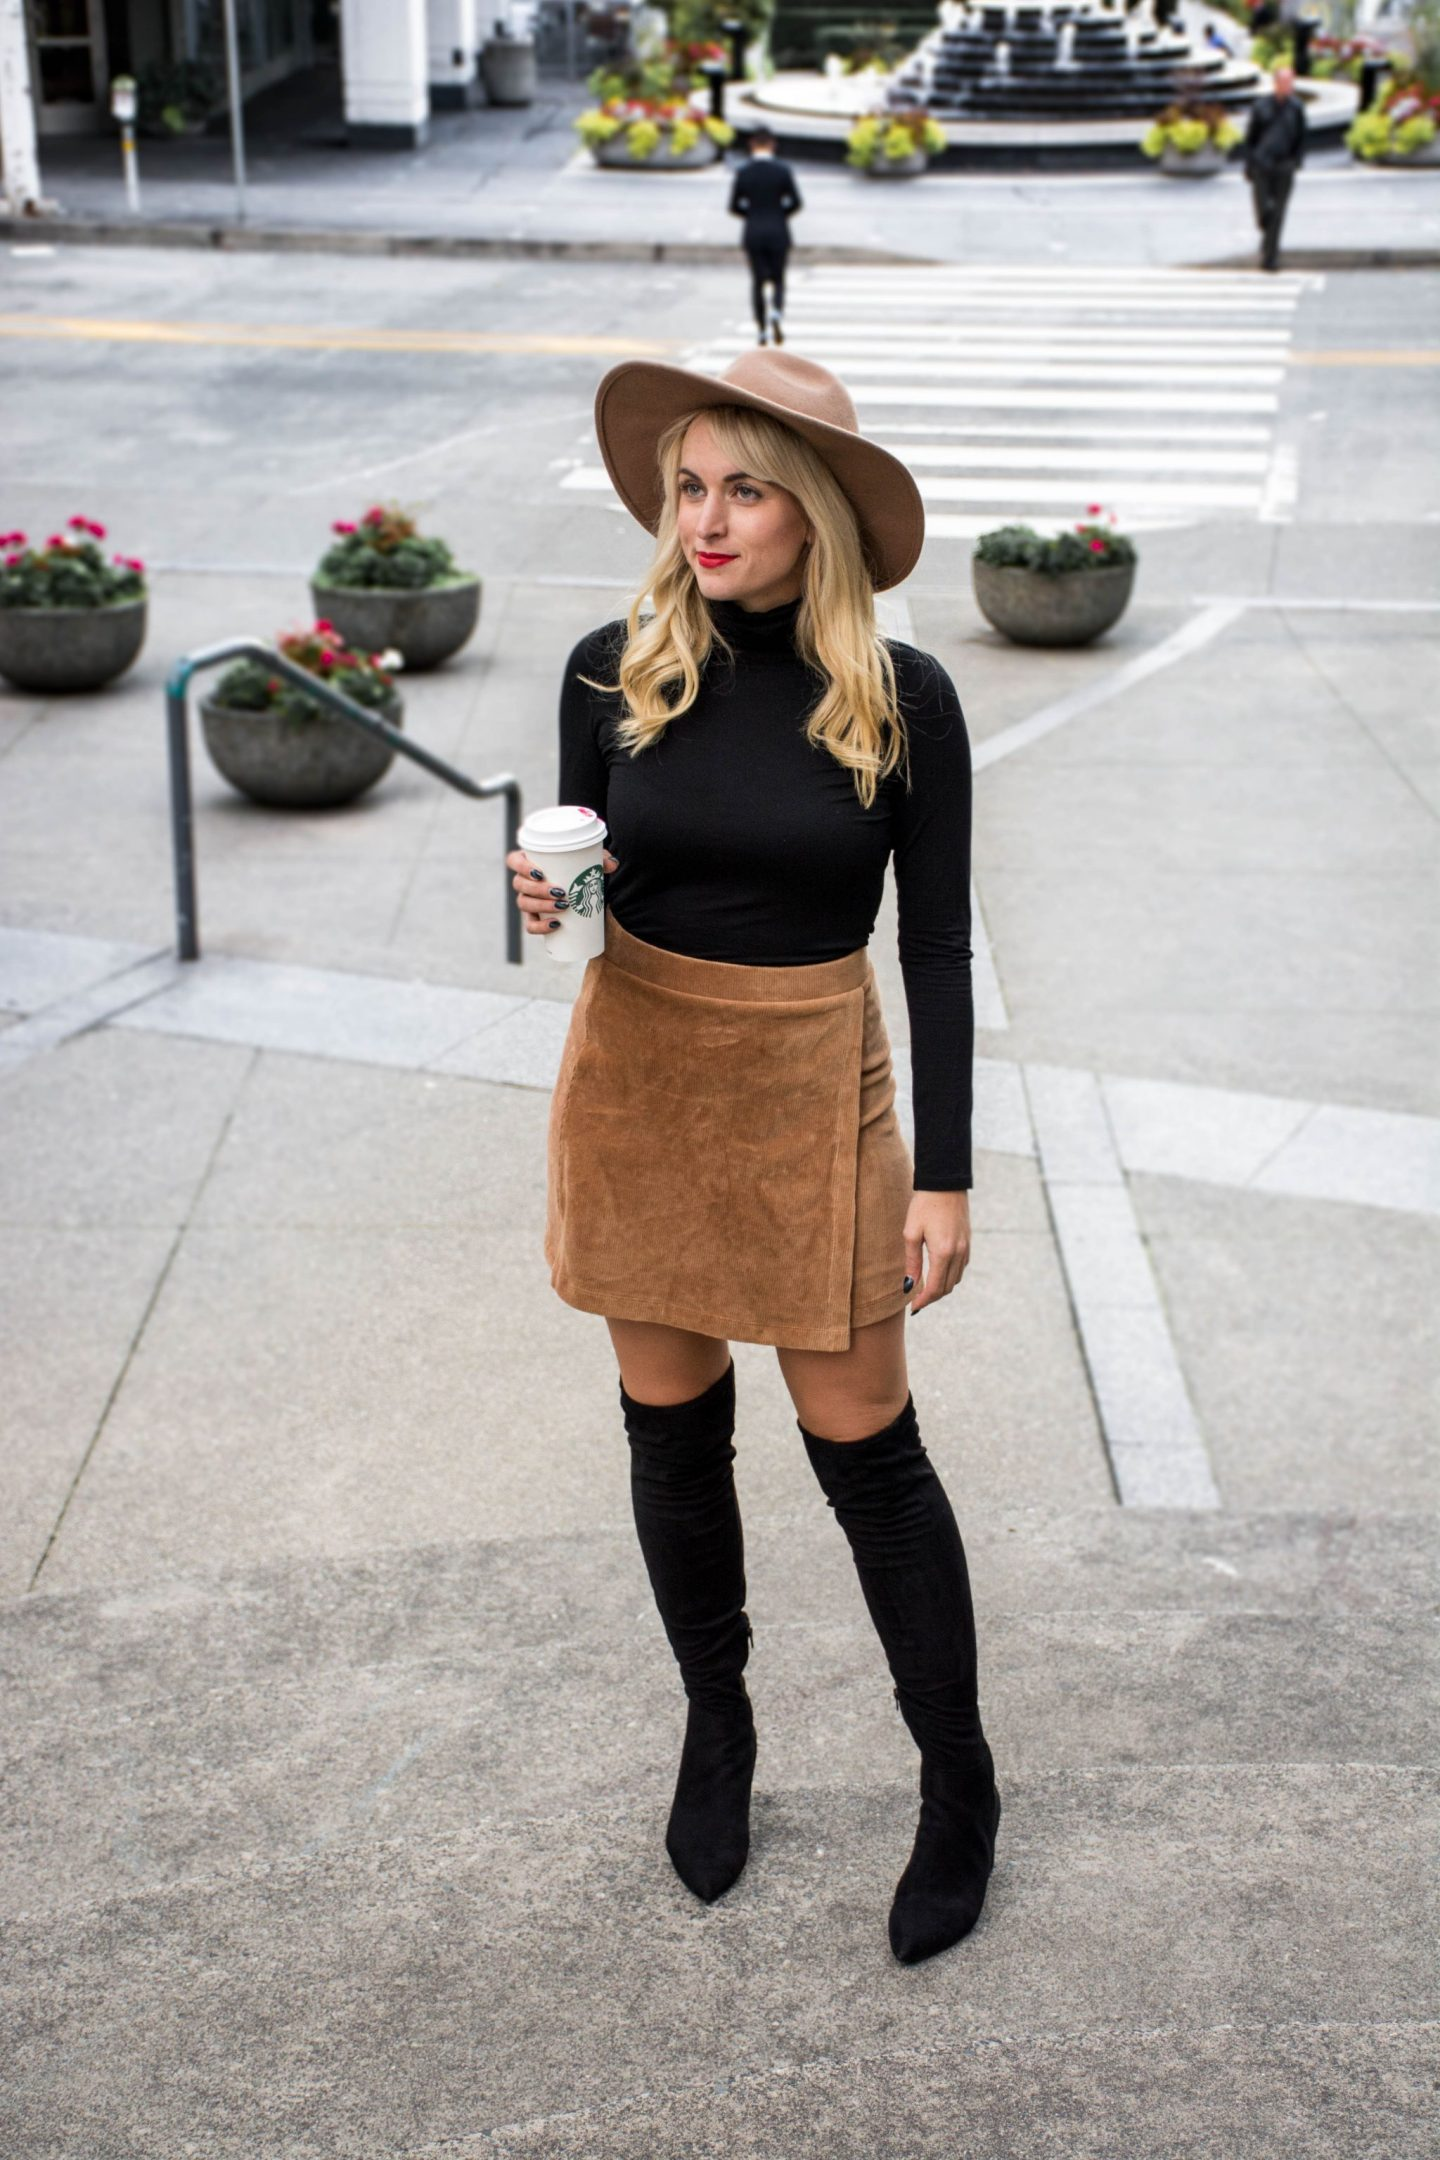 black and camel outfit ideas black turtleneck and camel corduroy skirt